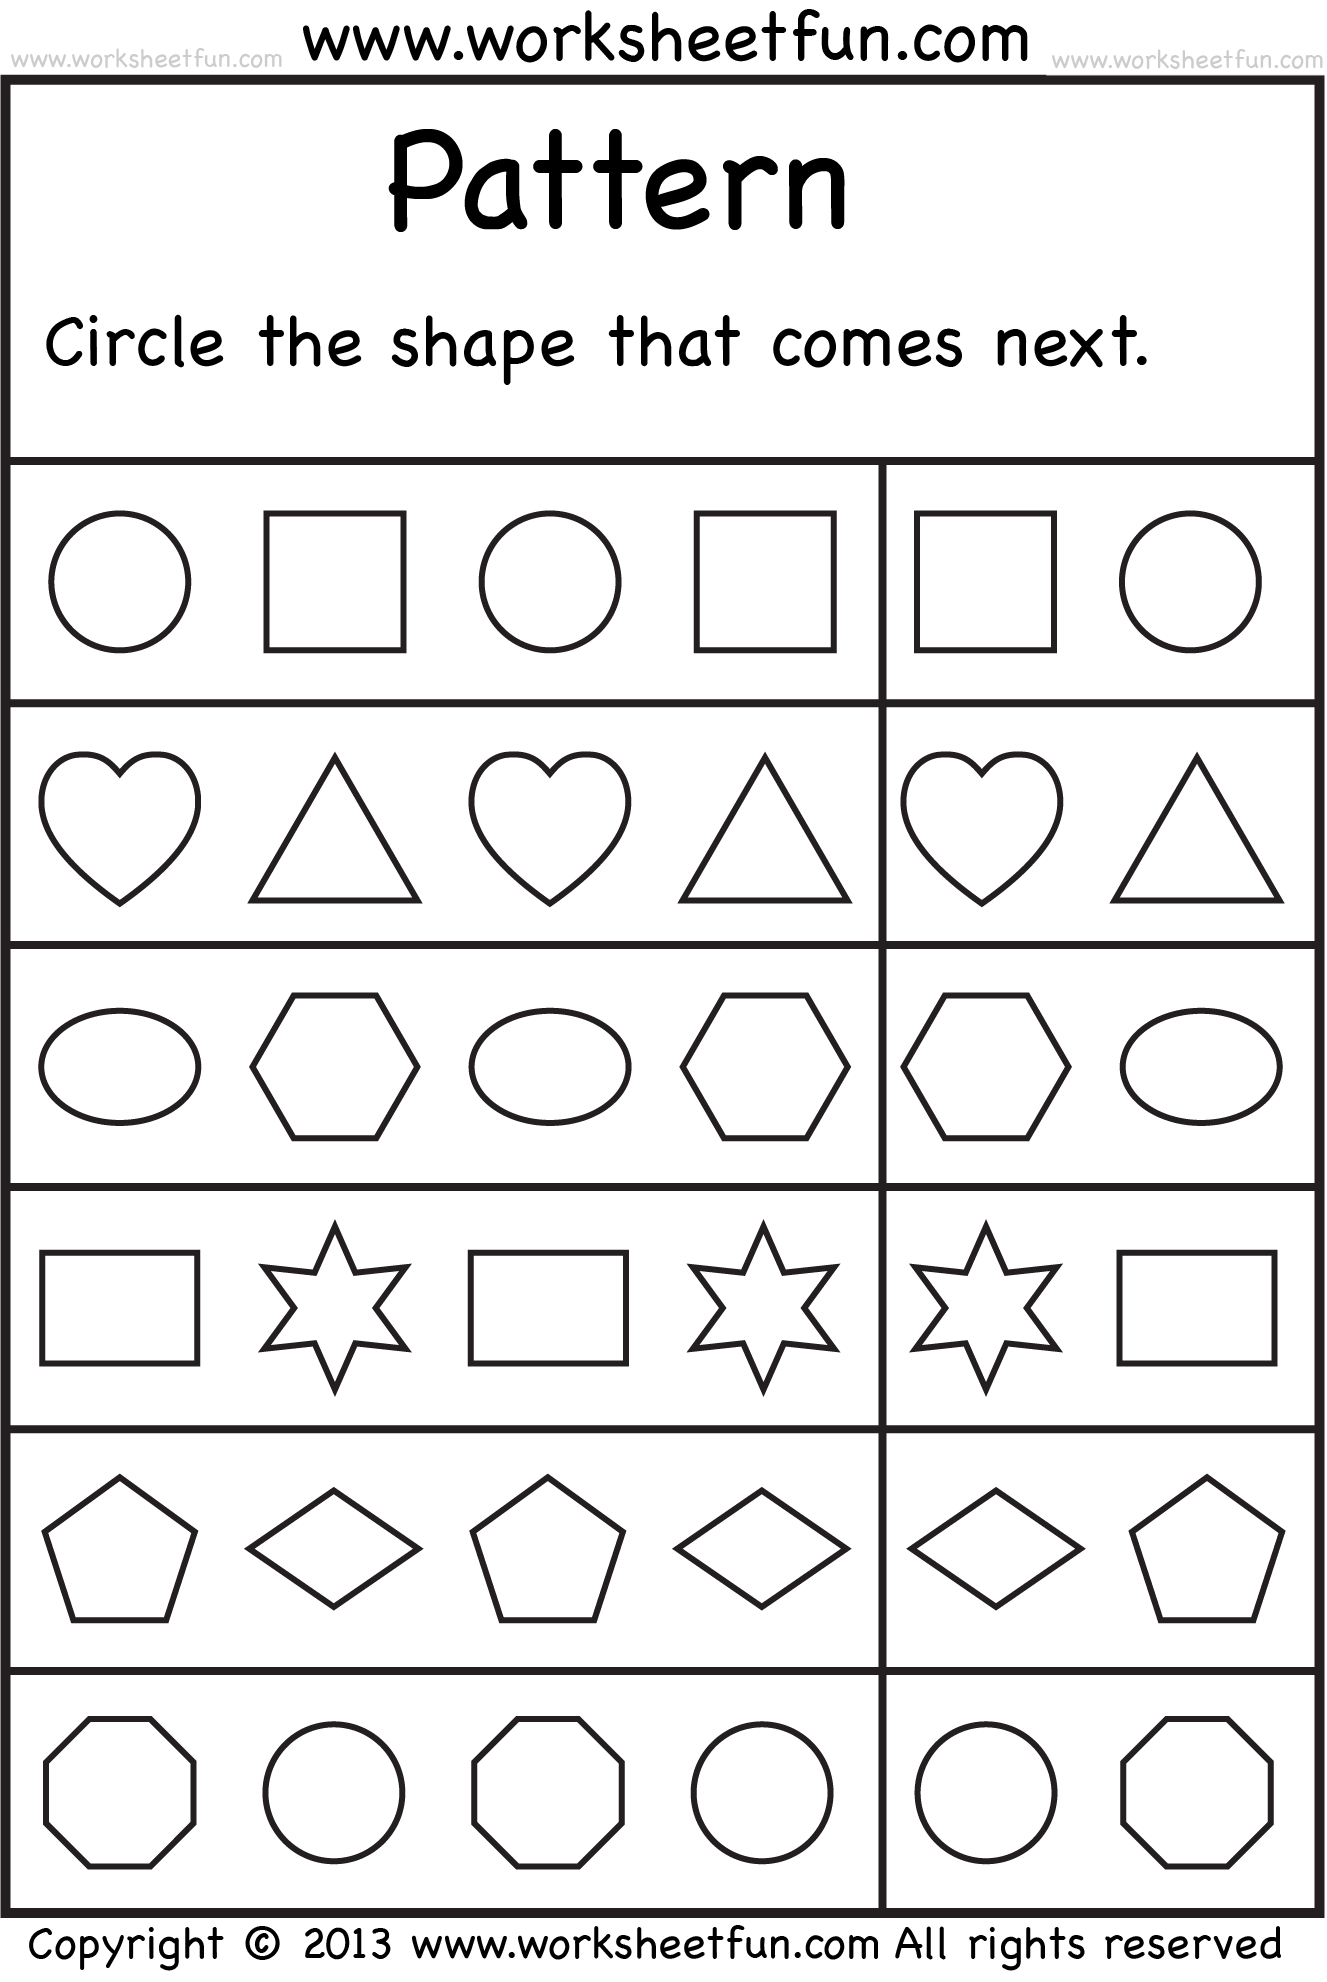 Aldiablosus  Marvellous  Images About School Worksheets On Pinterest  Number Words  With Lovable  Images About School Worksheets On Pinterest  Number Words Alphabet Worksheets And Free Printable Kindergarten Worksheets With Delightful Elements Of A Story Worksheets Also Tracing Words Worksheet In Addition Rudy Movie Worksheet And Counting To  Worksheets For Kindergarten As Well As Rhombus Properties Worksheet Additionally Th Grade Math Problems Worksheets From Pinterestcom With Aldiablosus  Lovable  Images About School Worksheets On Pinterest  Number Words  With Delightful  Images About School Worksheets On Pinterest  Number Words Alphabet Worksheets And Free Printable Kindergarten Worksheets And Marvellous Elements Of A Story Worksheets Also Tracing Words Worksheet In Addition Rudy Movie Worksheet From Pinterestcom